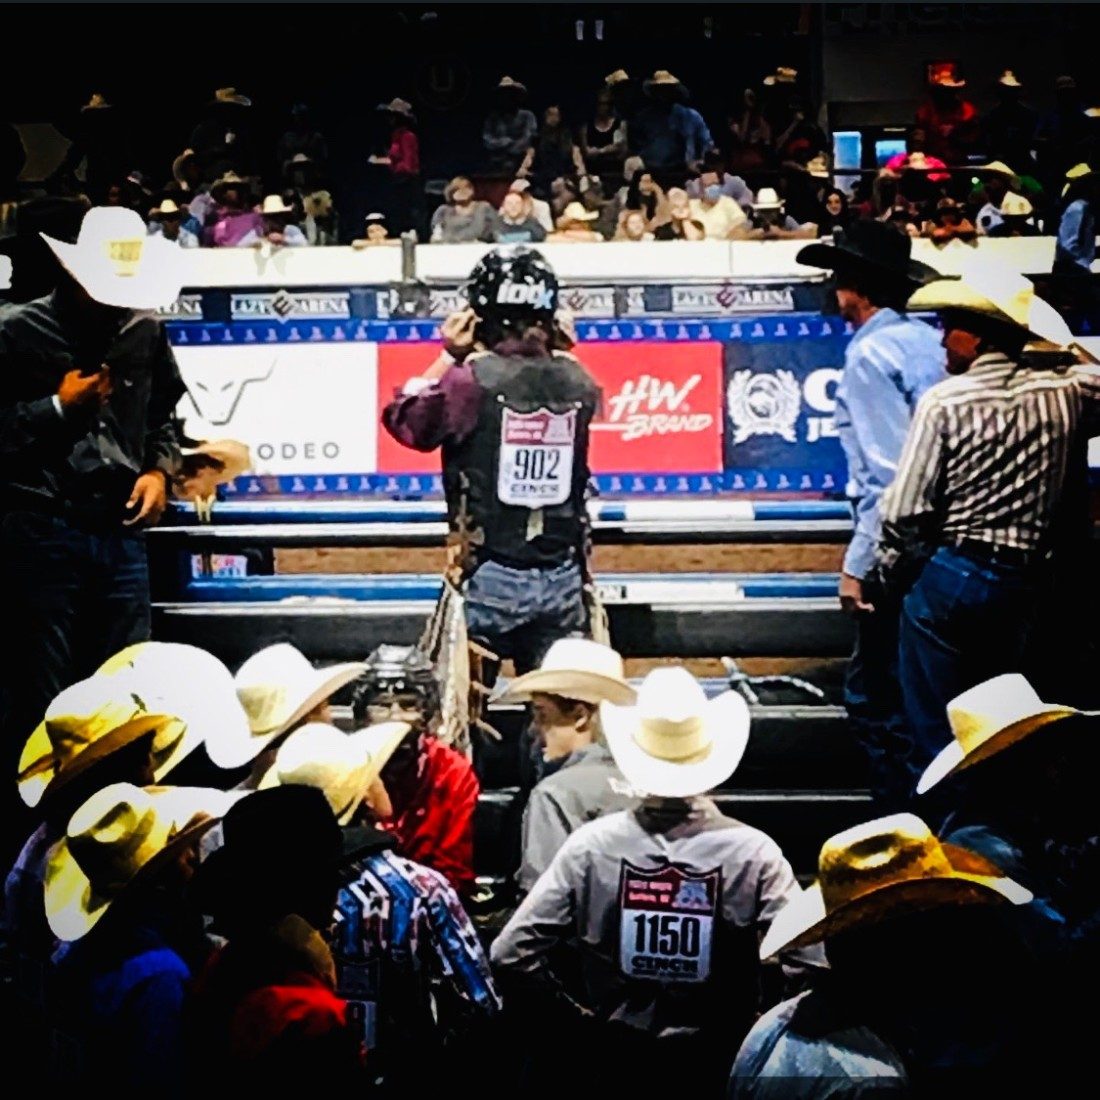 Moore competing at the National High School Rodeo Association Finals in Guthrie, OK. Photo courtesy of Kenneth Moore.